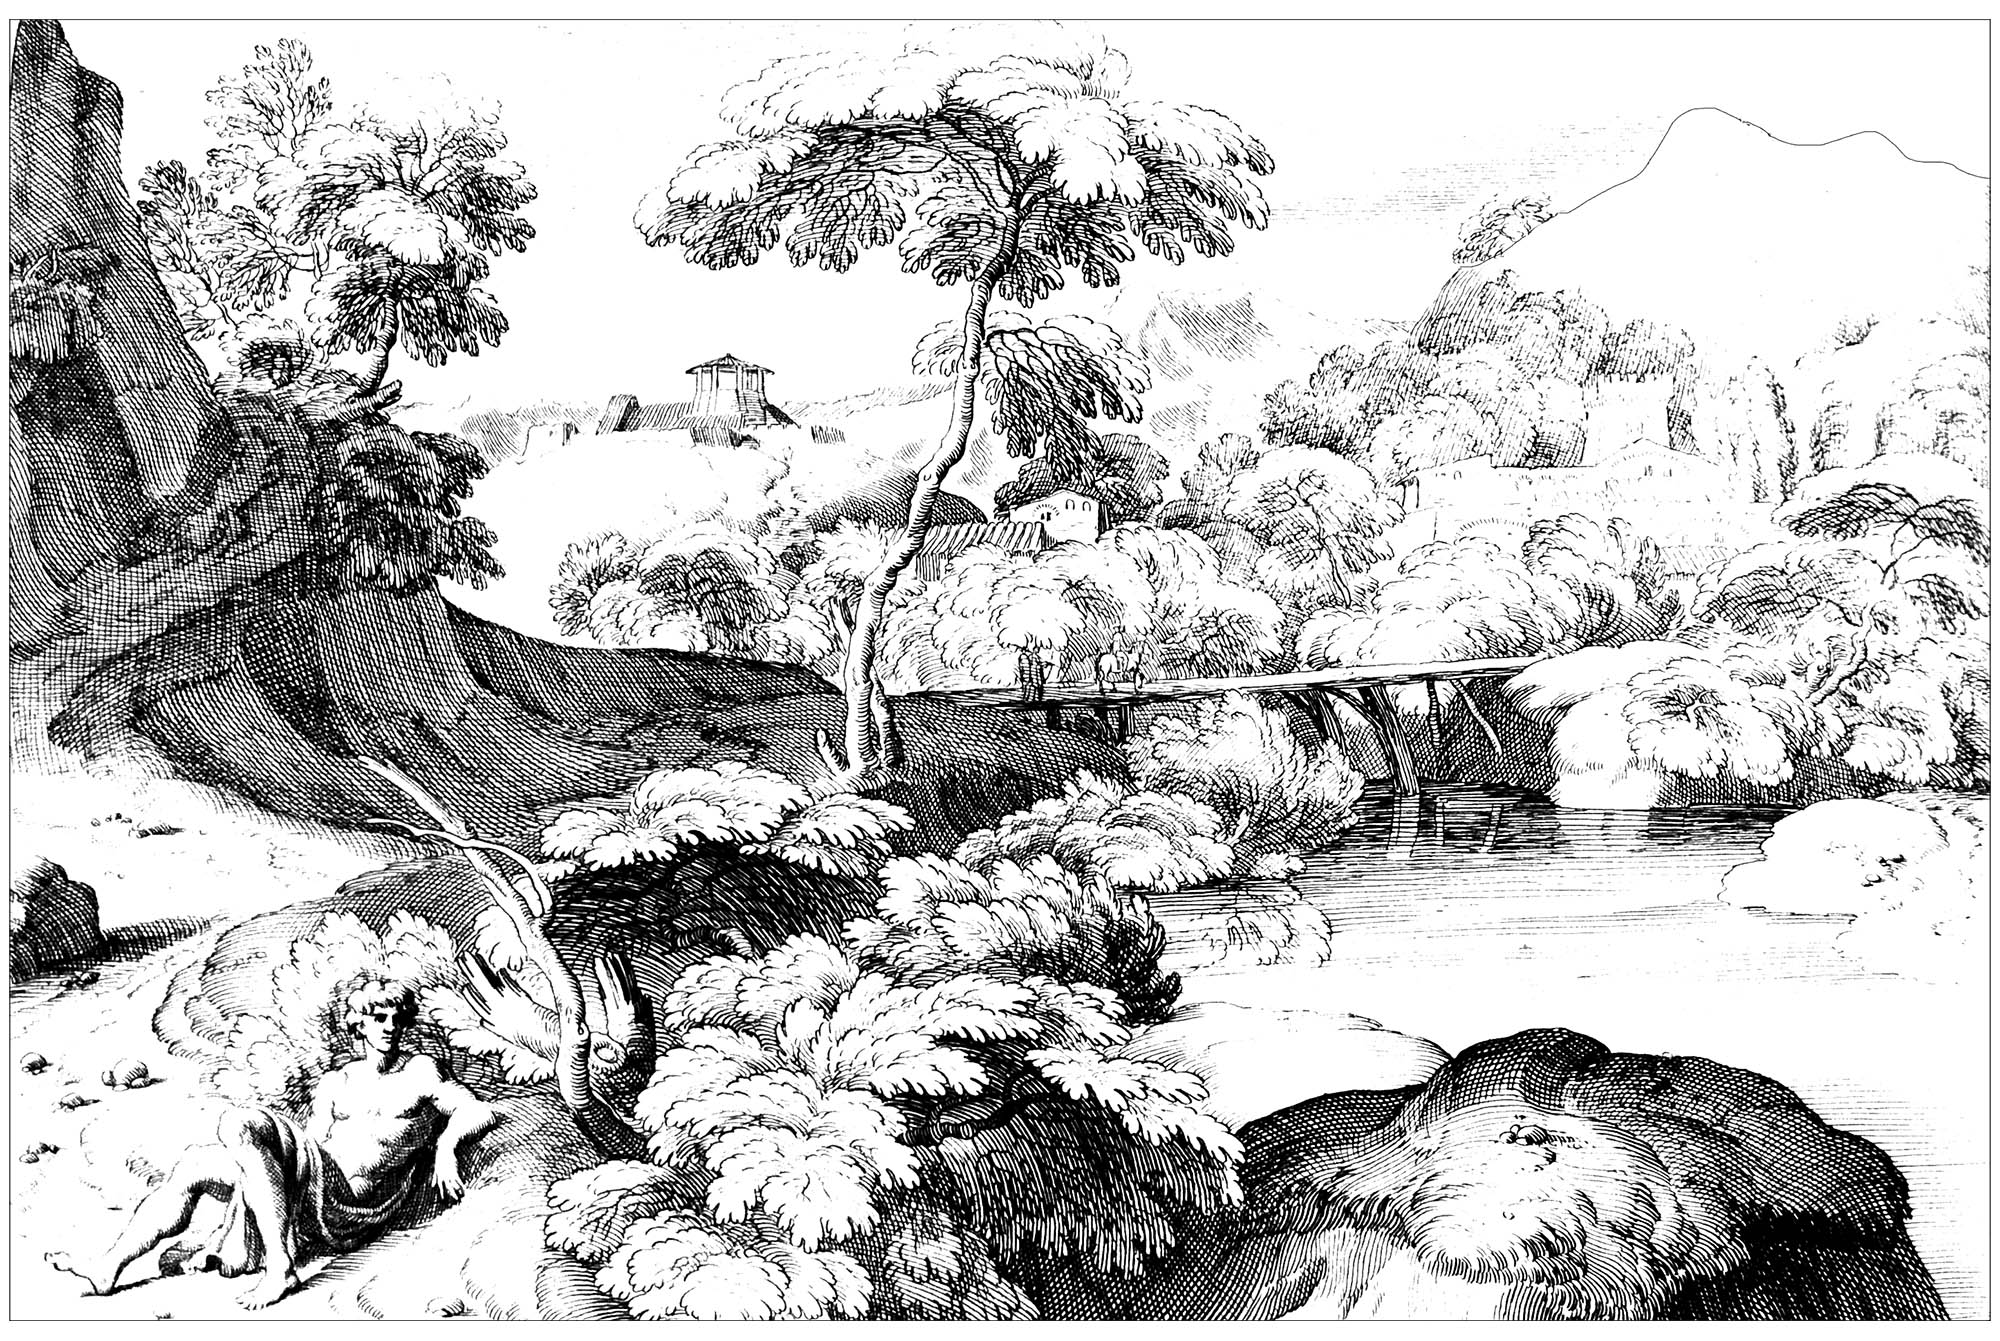 coloring adult landscape 17th century jacques rousseau - Landscape Coloring Pages